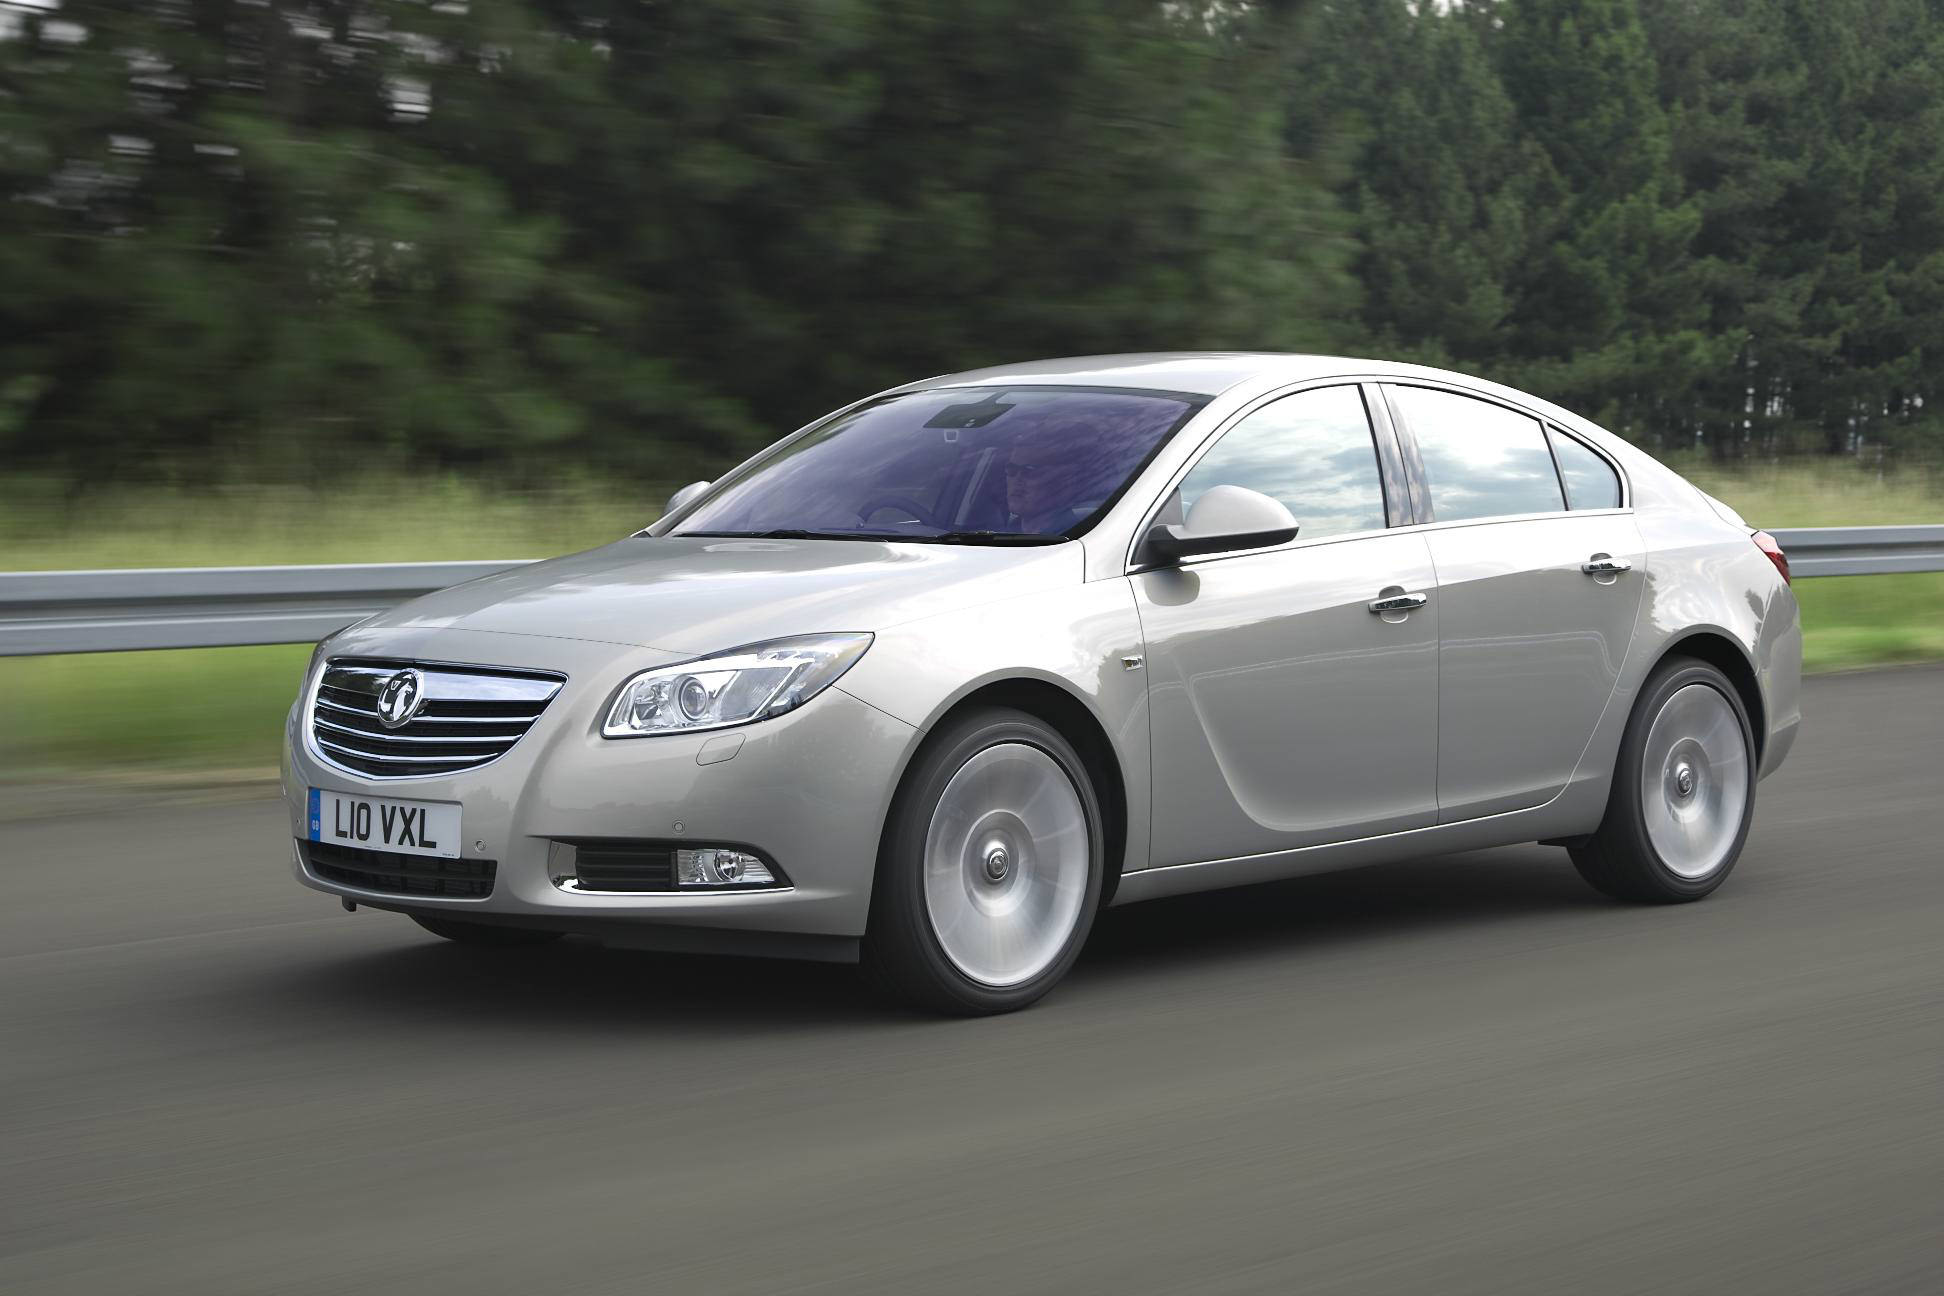 Used Car Buying Guide Vauxhall Insignia 2009 To 2017